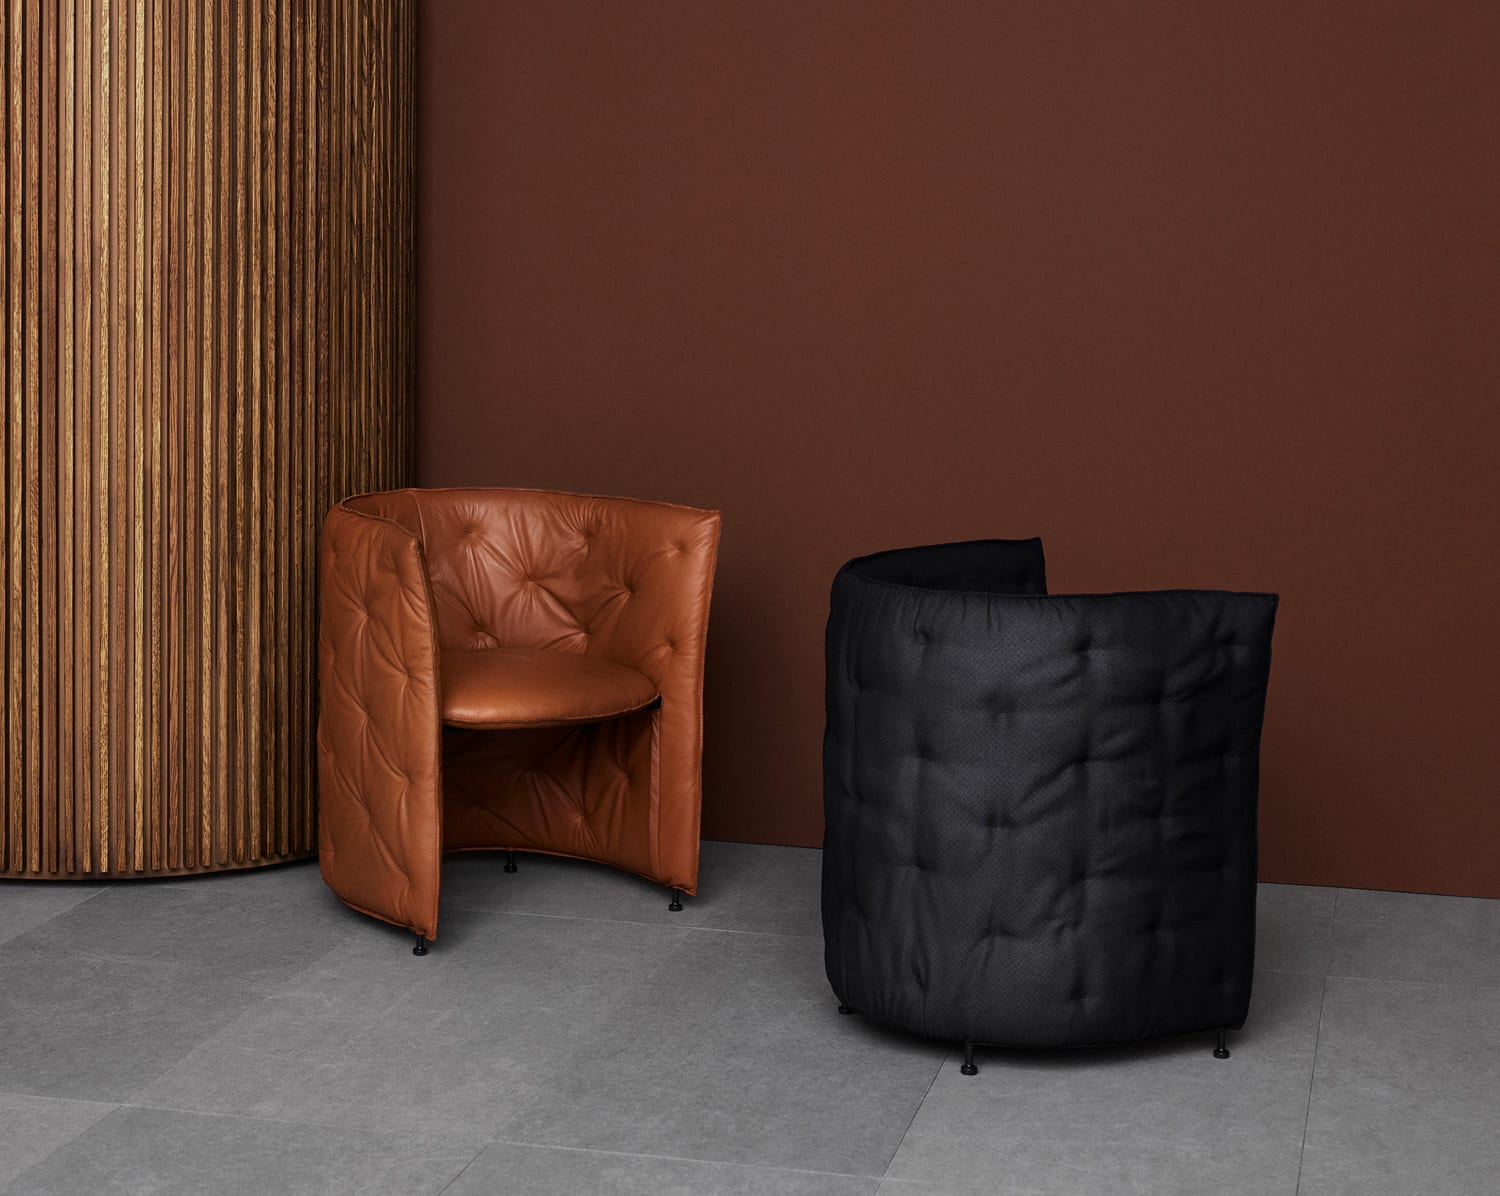 Best Of Stockholm Design Week 2019, Fogia Collection | Yellowtrace